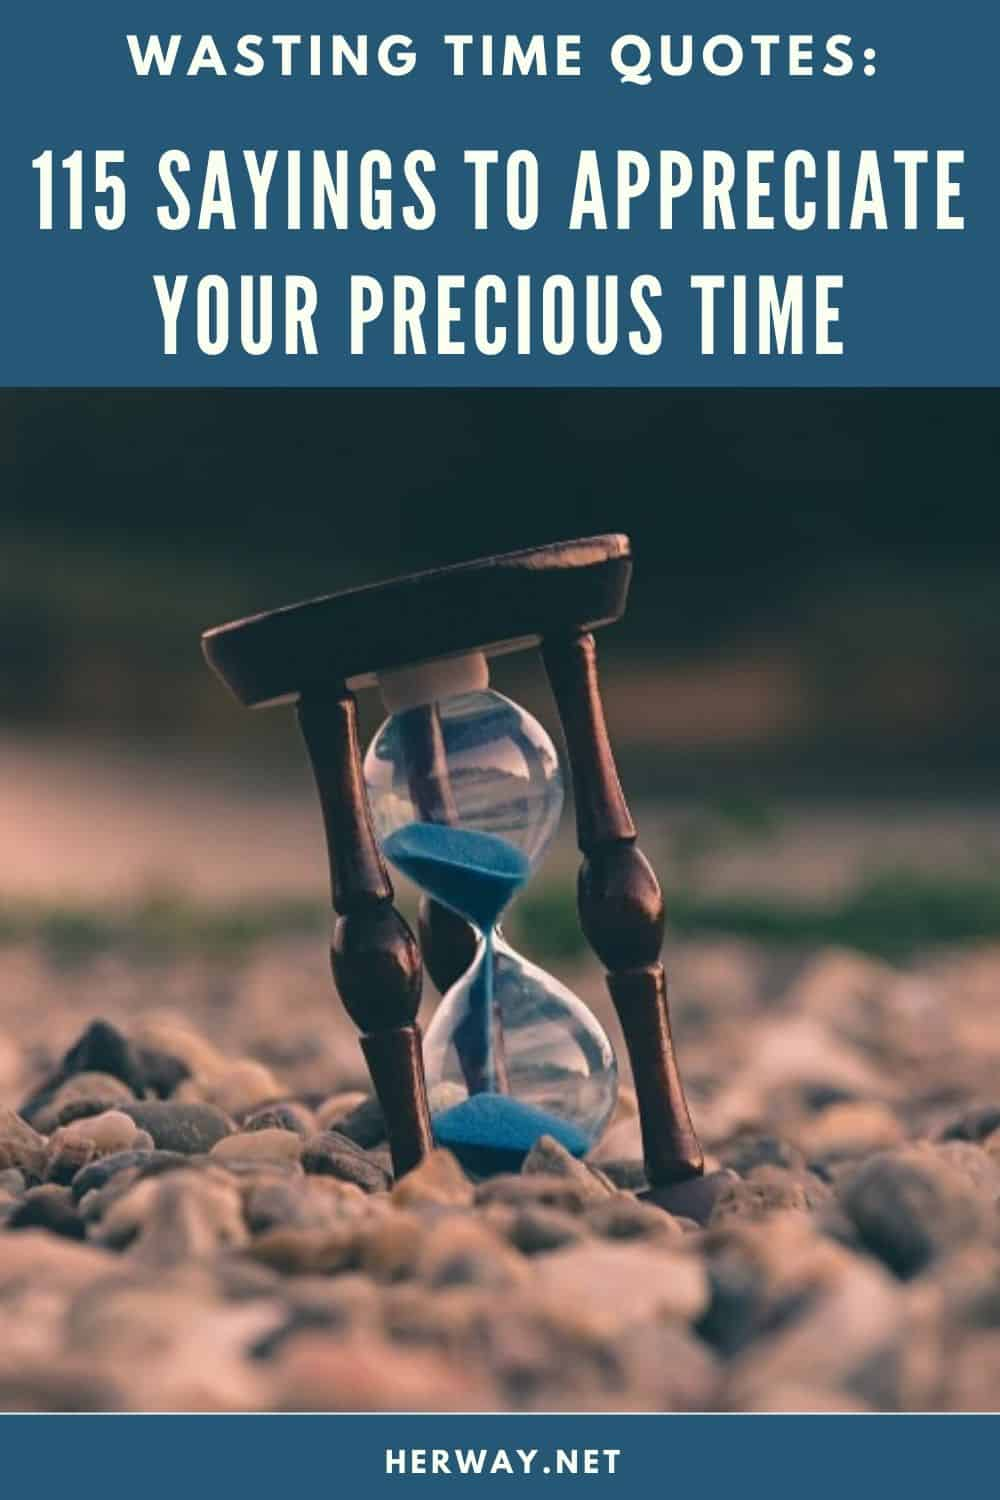 Wasting Time Quotes: 115 Sayings To Appreciate Your Precious Time pinterest